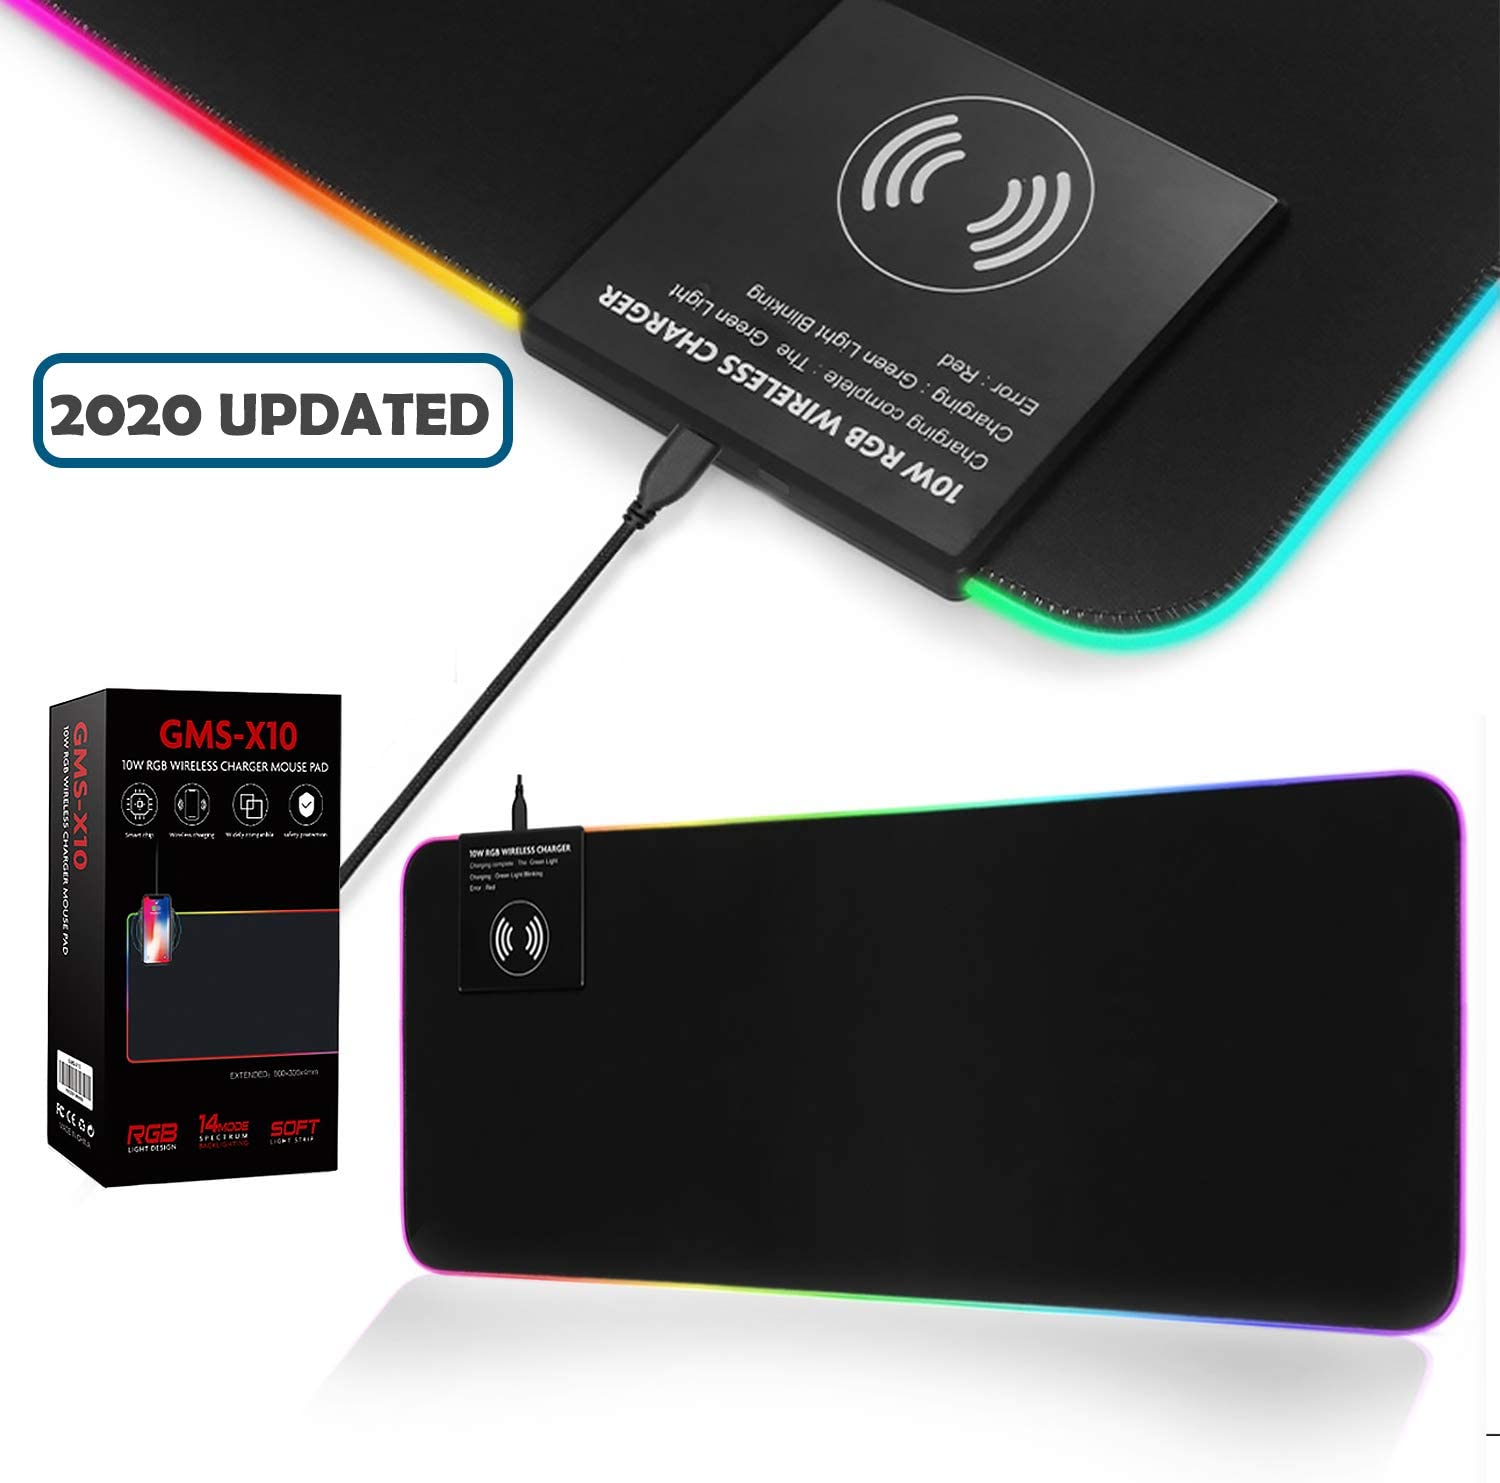 Large RGB Gaming Mouse Mat Wireless Charging,2 in 1 Glowing Extended Mousepad Not-Slip Rubber Base Keyboard Pad-Black 325x255mm